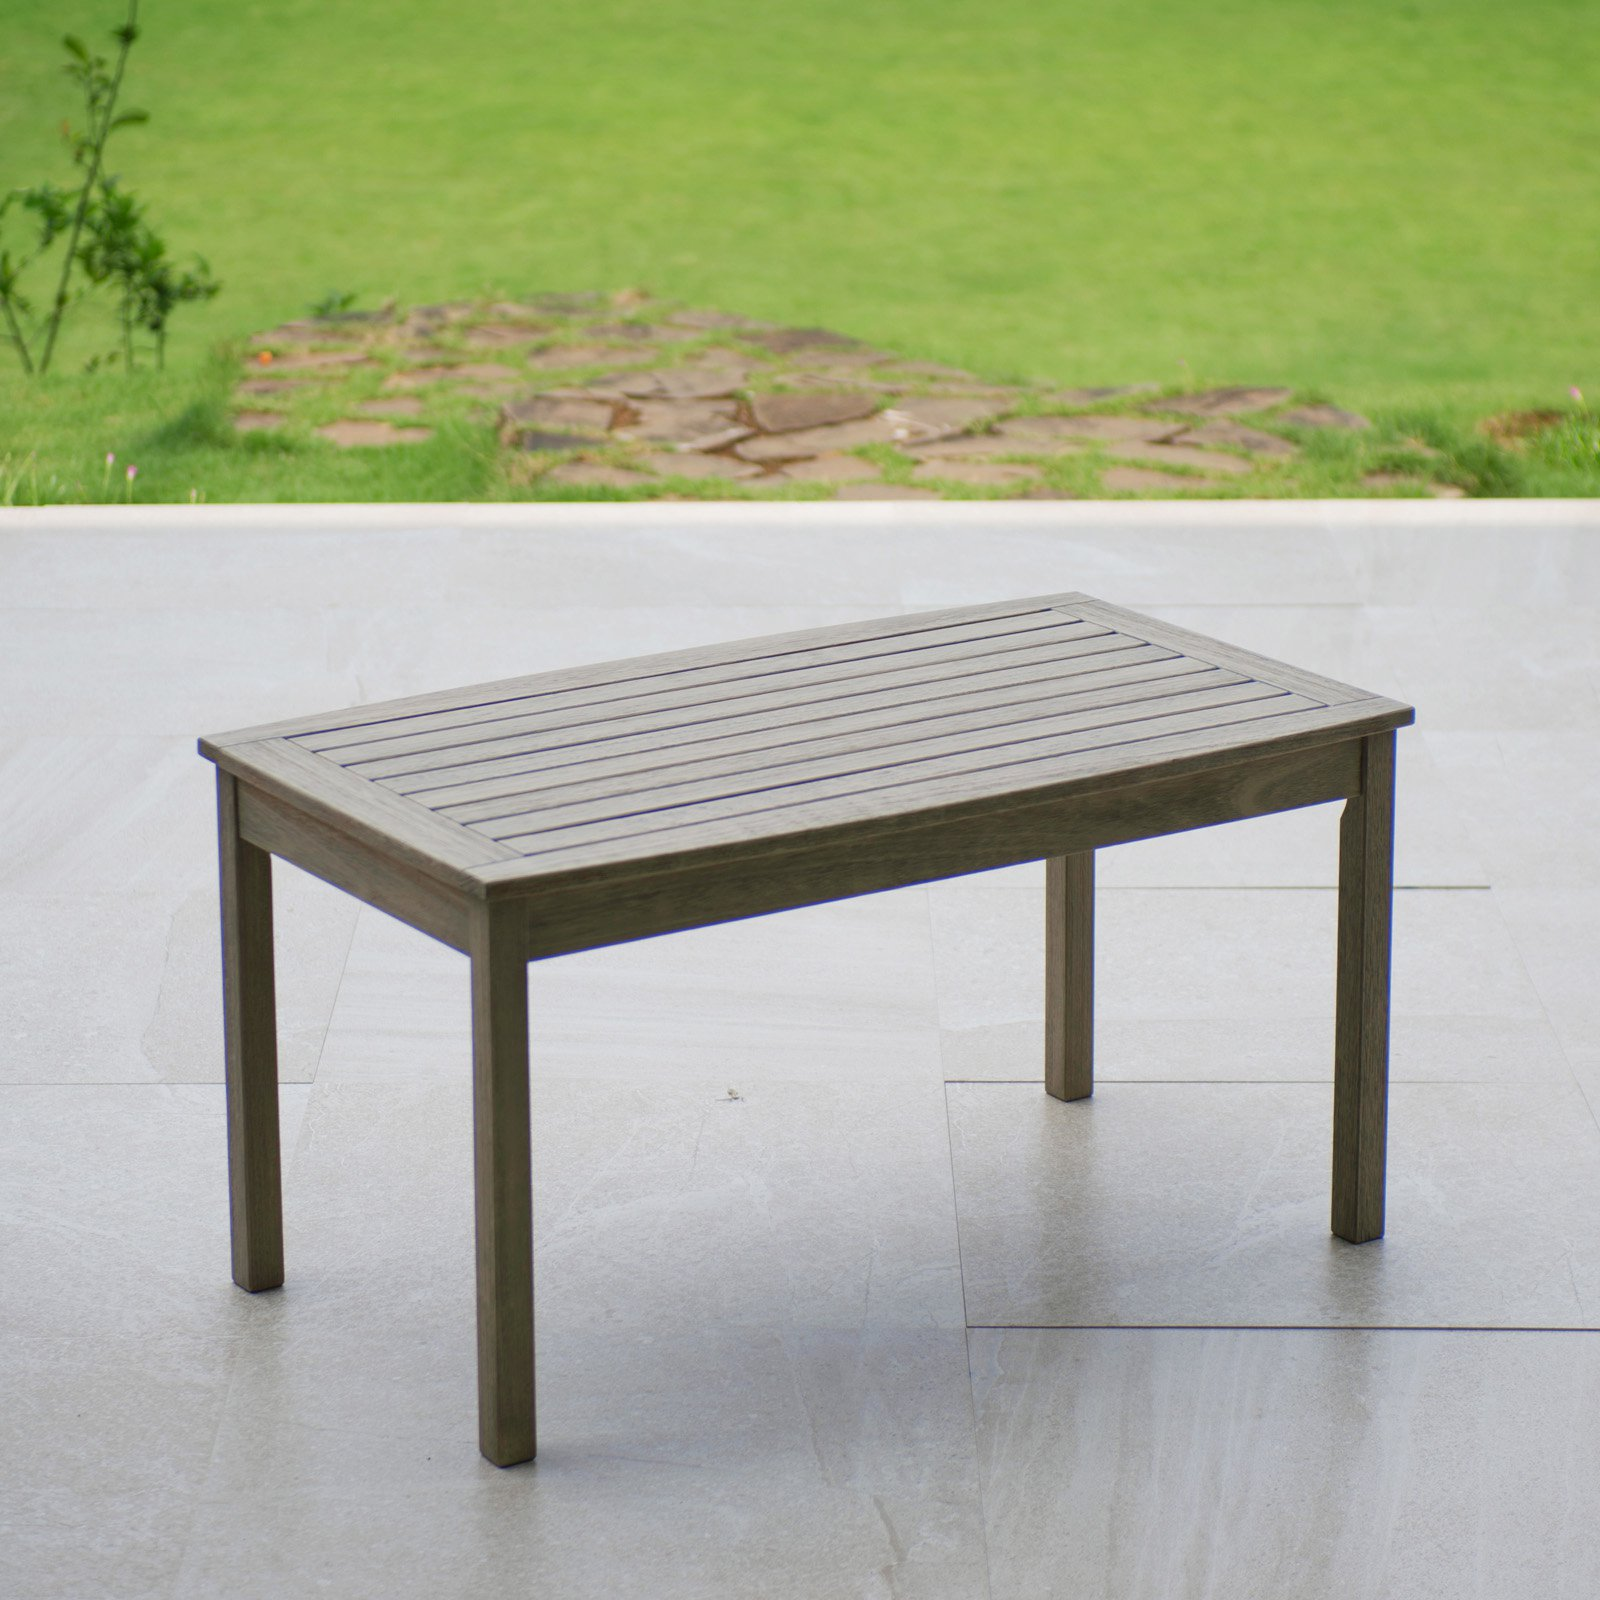 Cambridge Casual West Lake Patio Coffee Table